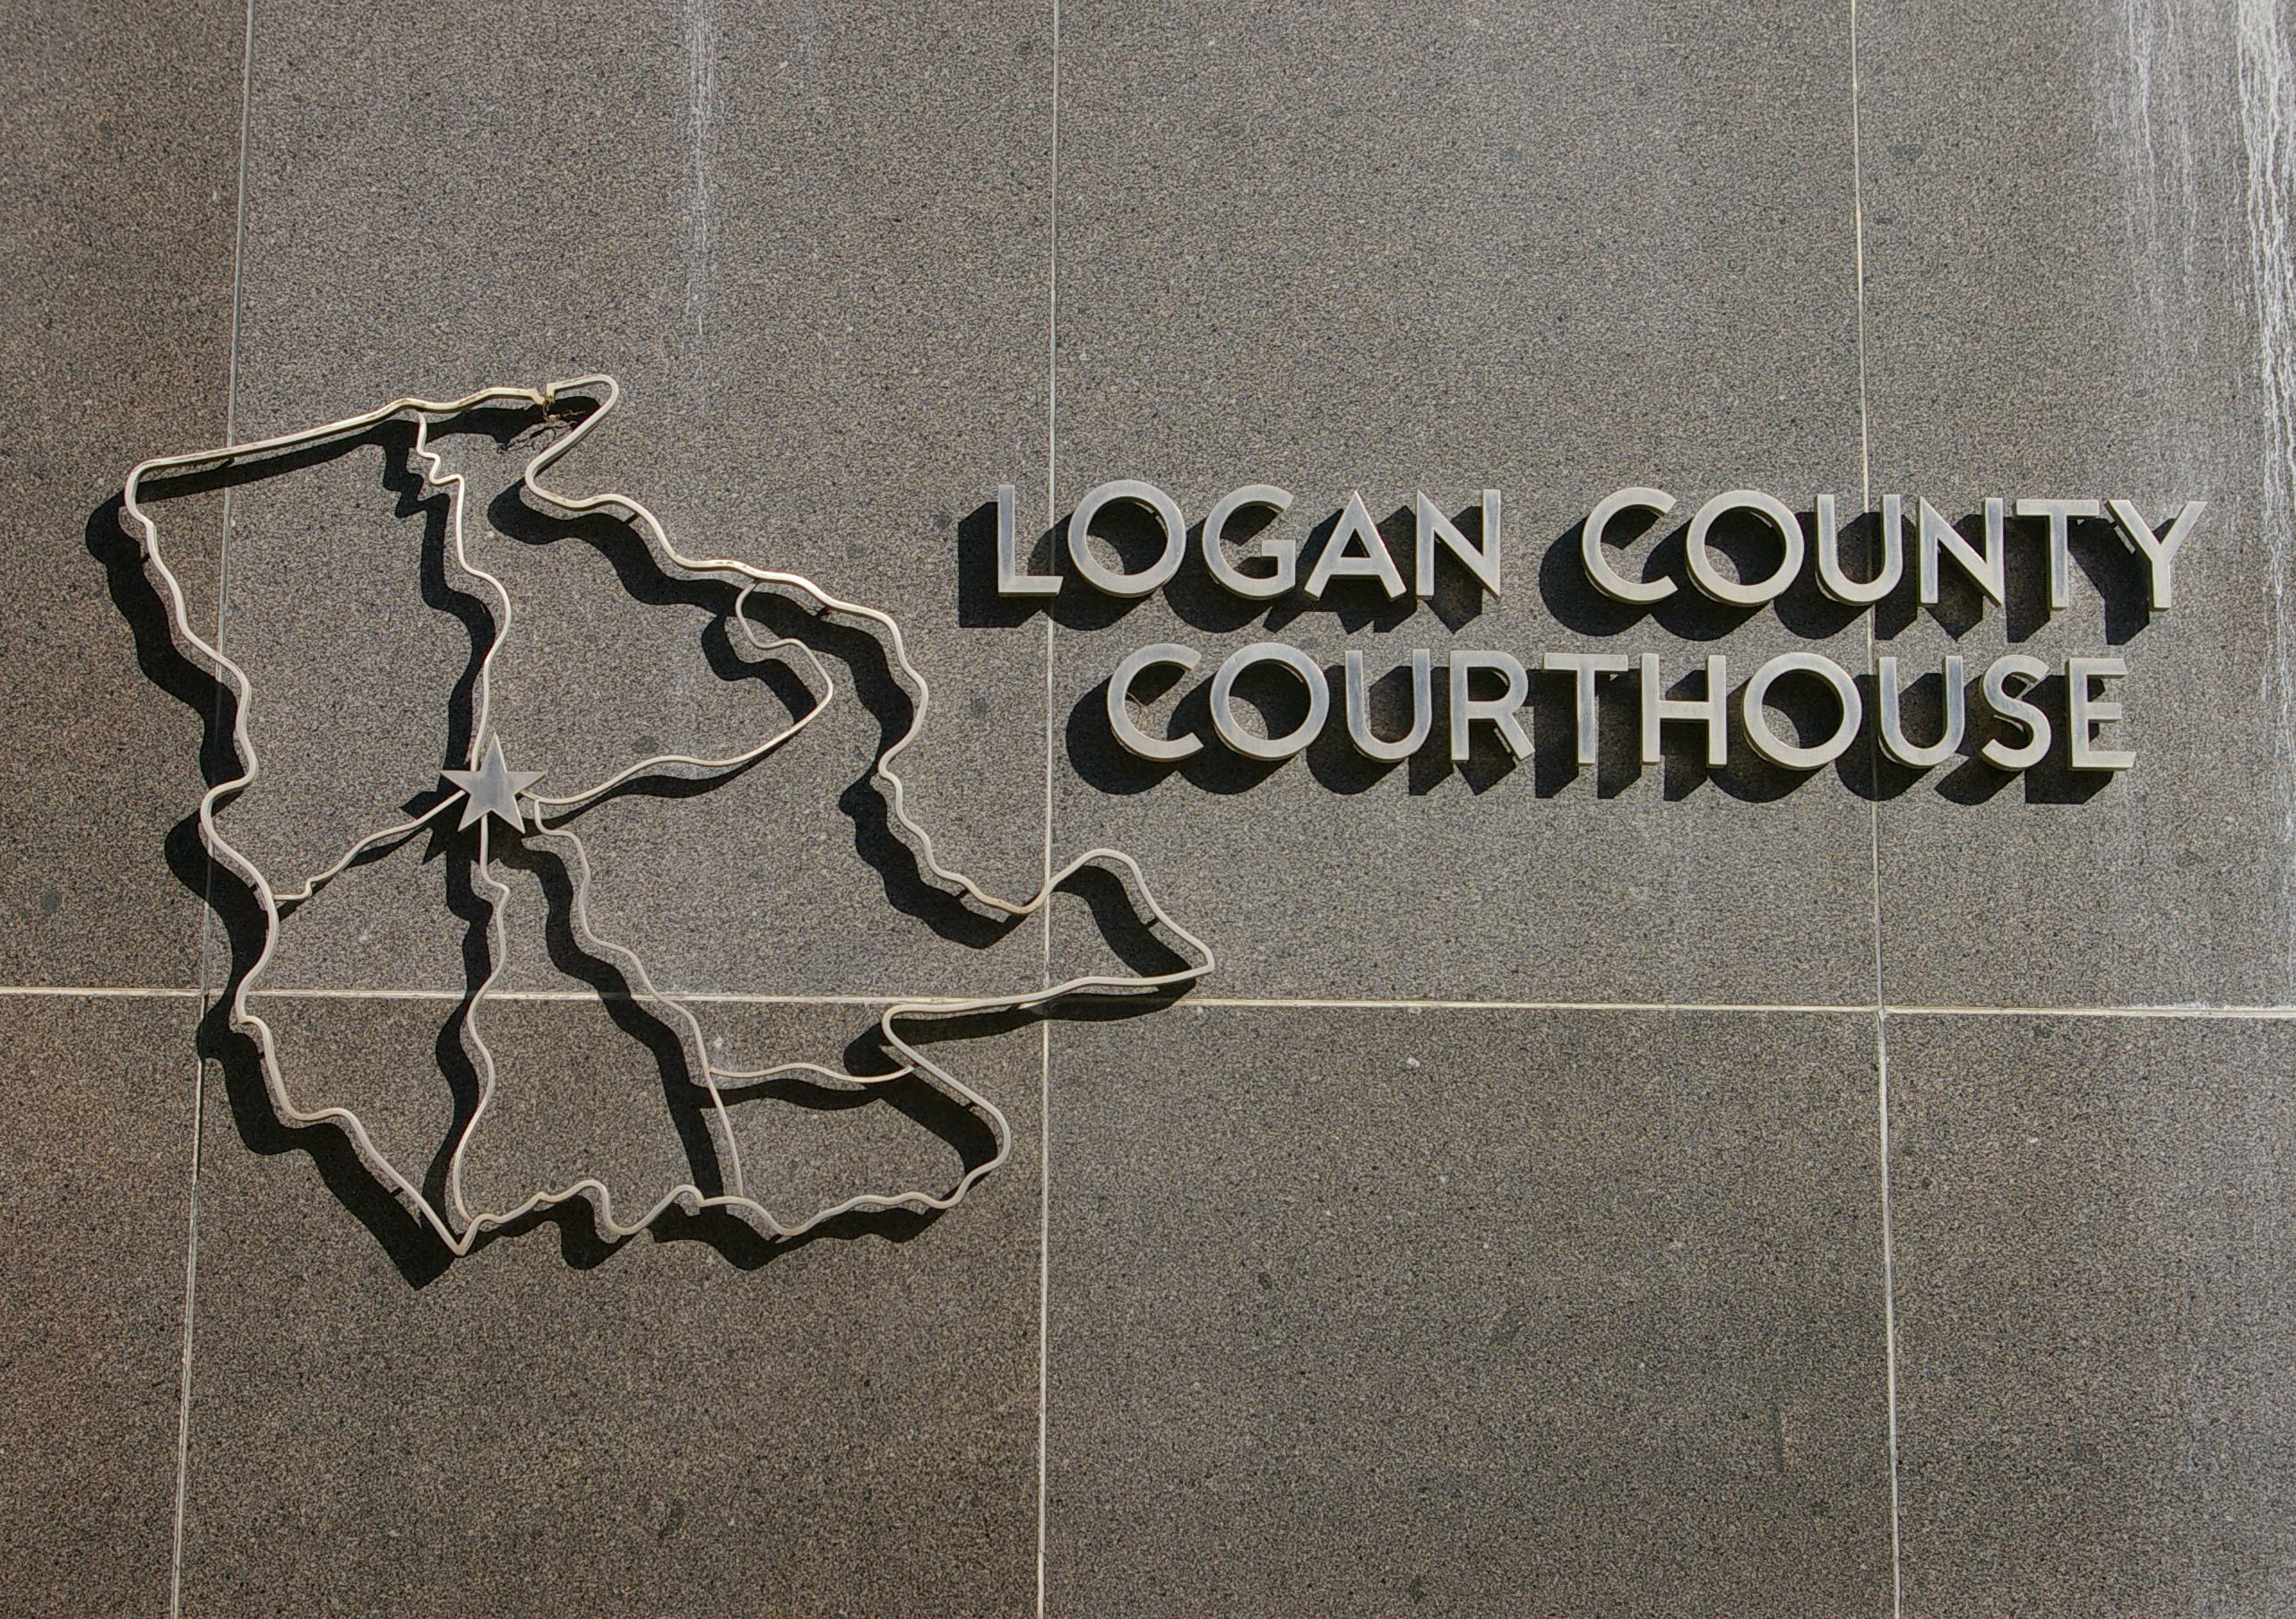 Logan County | US Courthouses